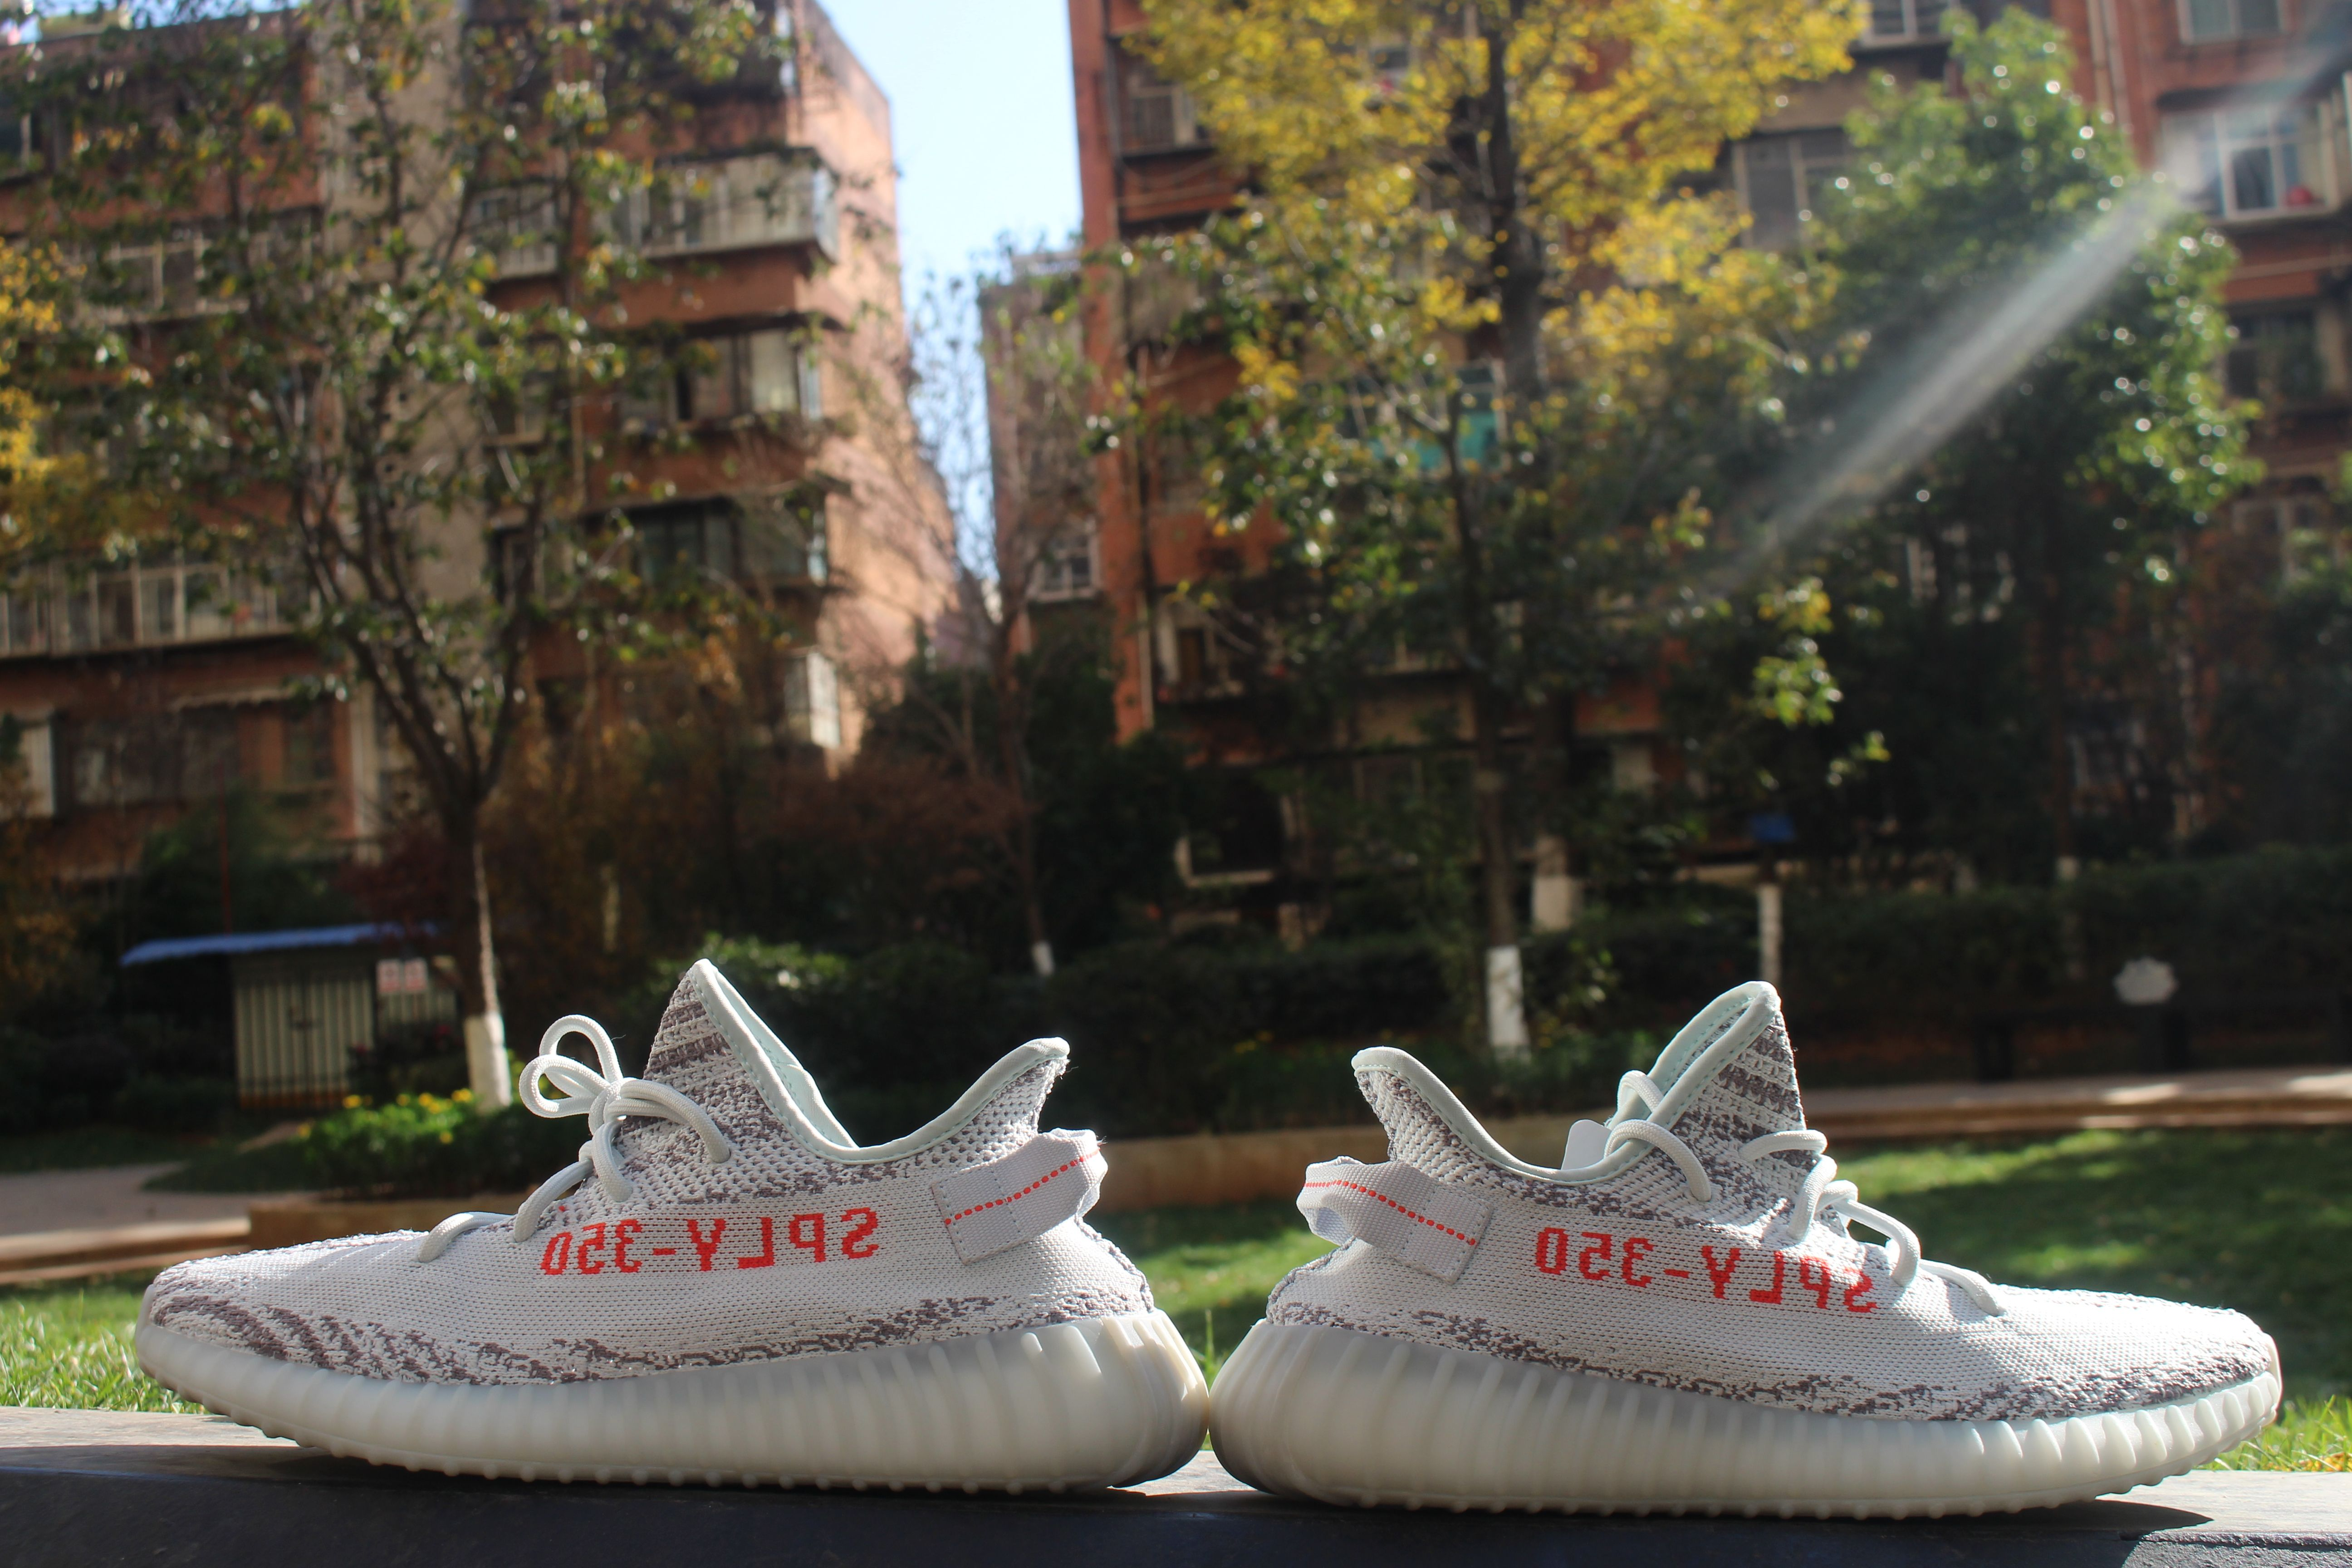 3c36a04f4386a sale shop authentic yeezy boost 350 750 950 and authentic air jordan adidas  yeezy boost 350